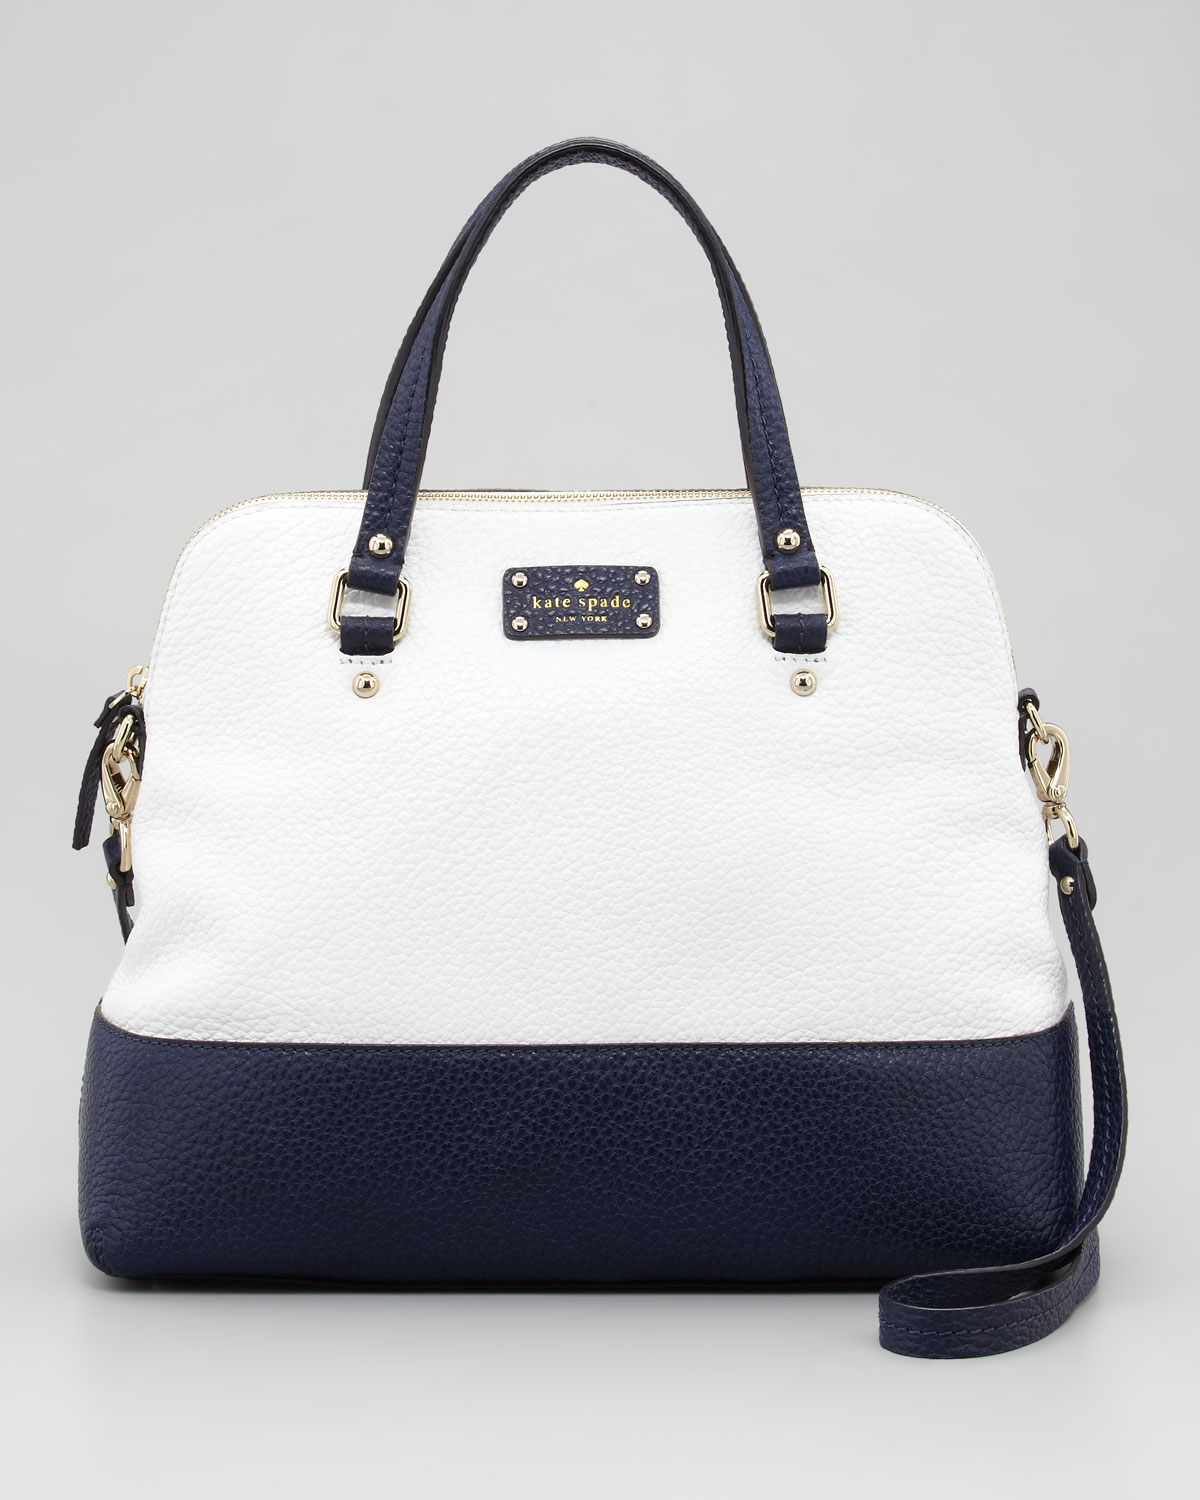 Kate Spade Purse Blue And White Best Image Ccdbb